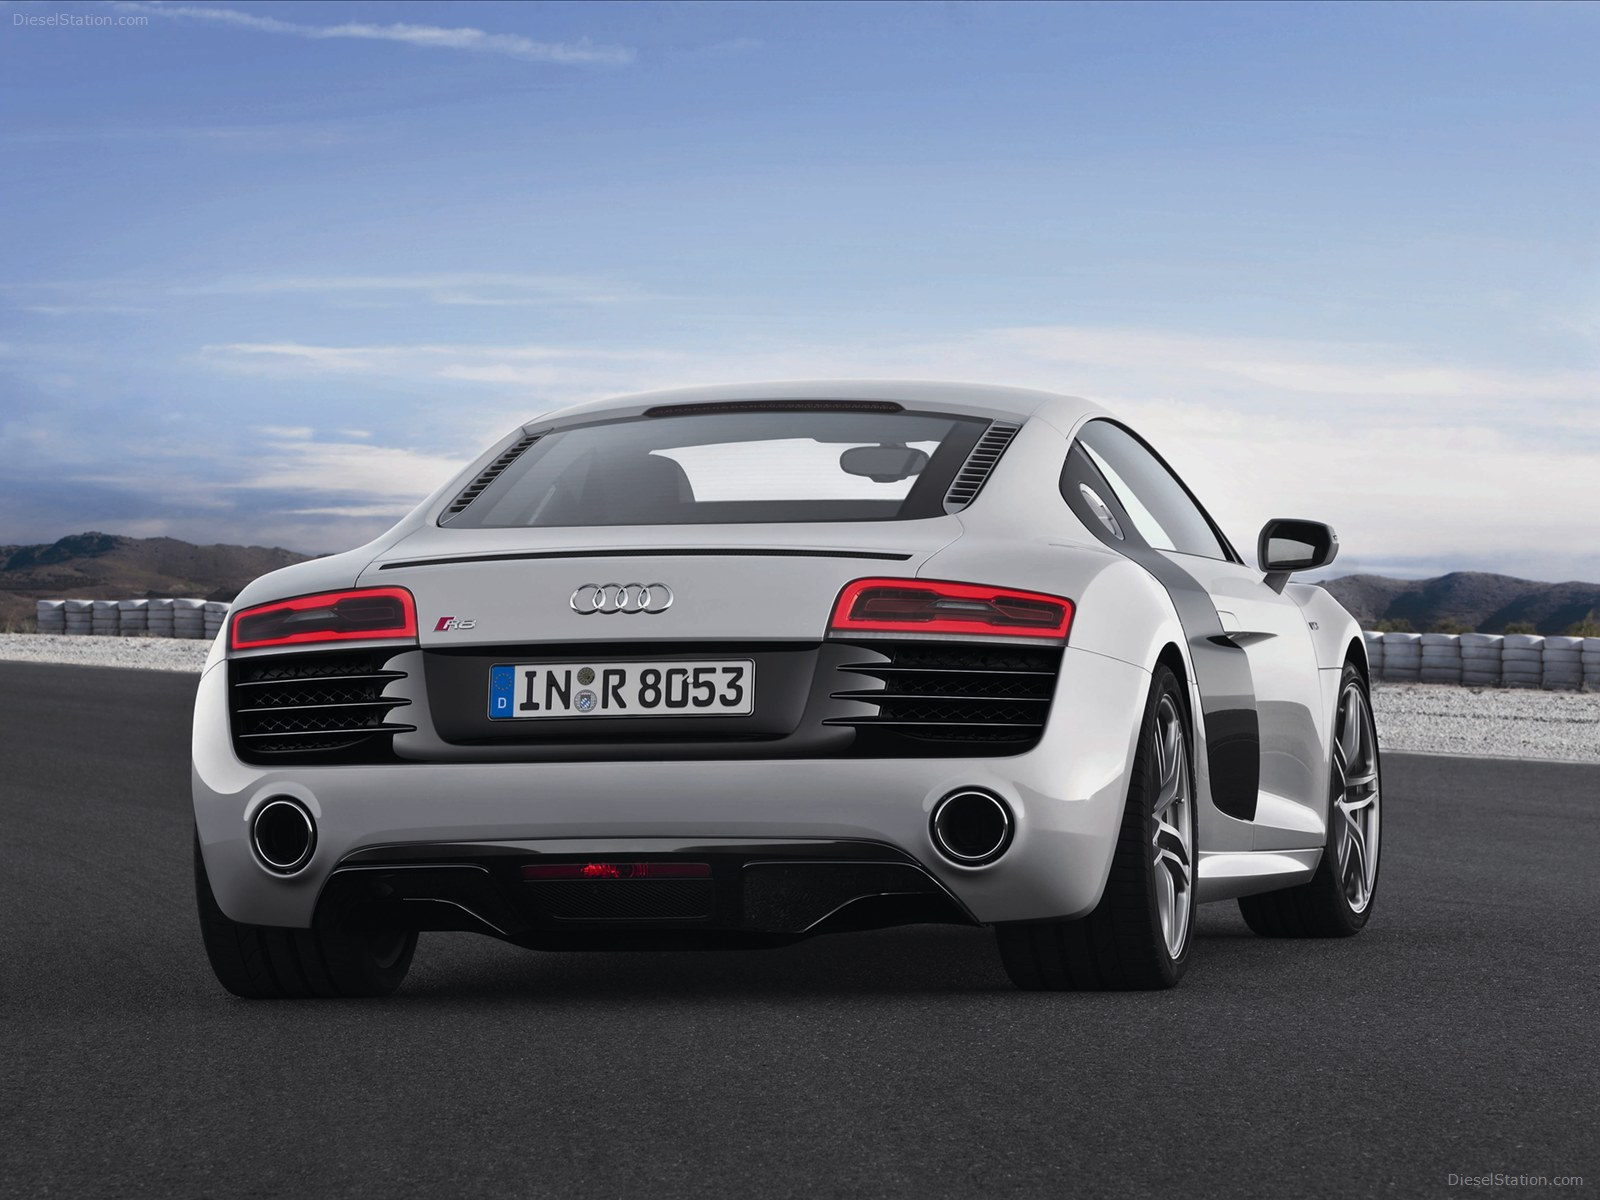 2013 Audi R8 V10 plus 07 Wallpaper 1600x1200